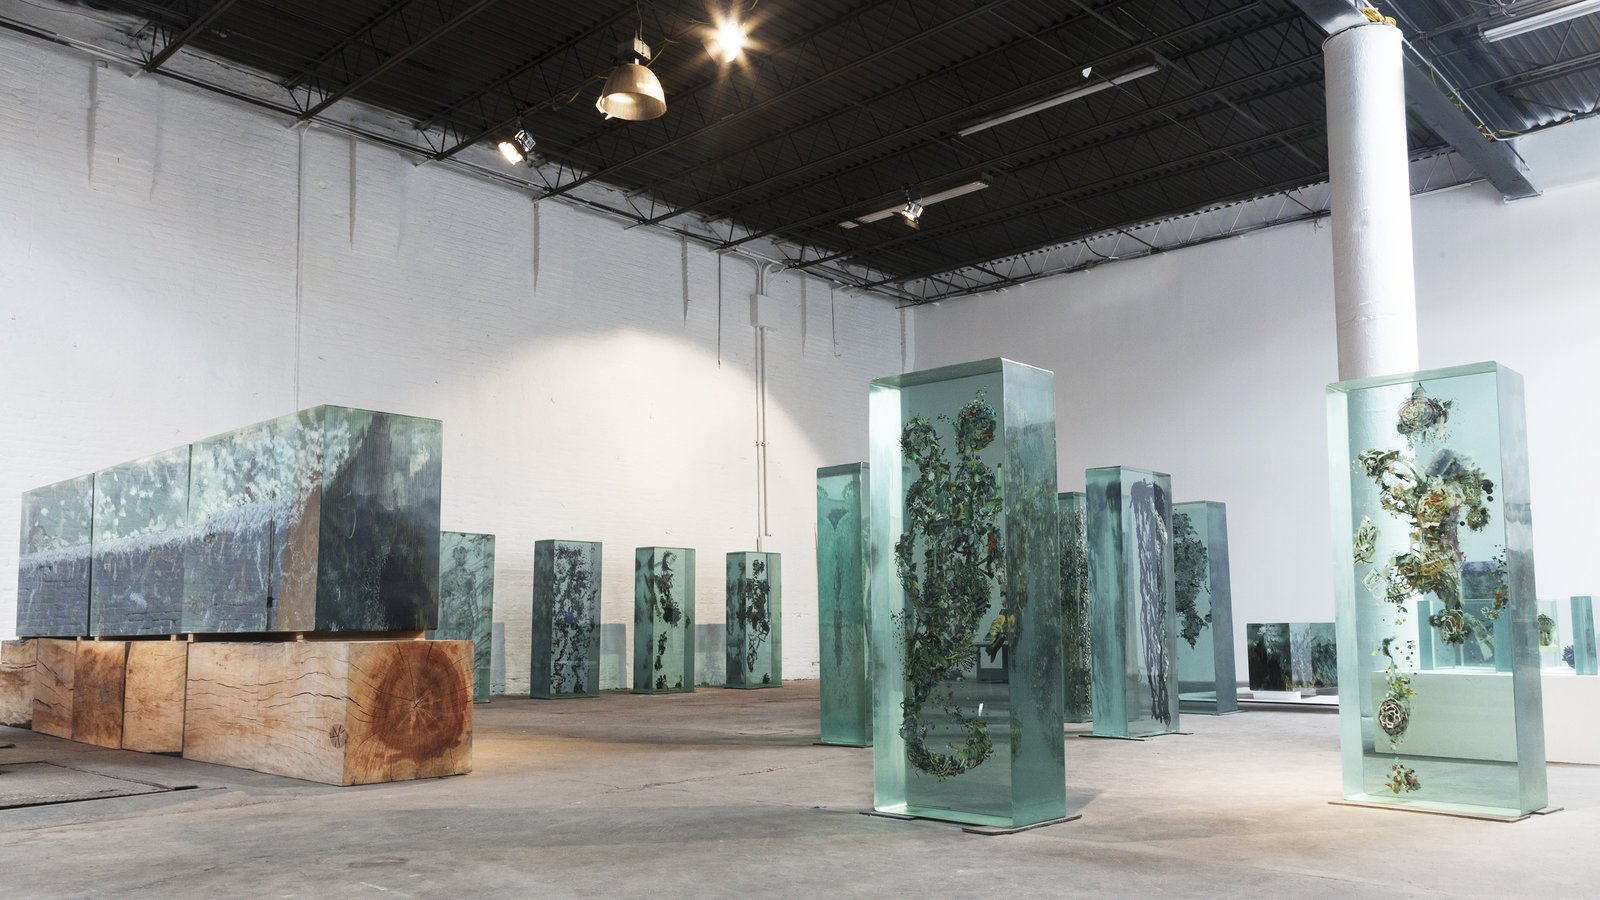 Yellin's studio, located in a Civil War-era warehouse in Red Hook, Brooklyn, houses his contemporary sculptures. Photo by David Deng.  Photo 2 of 6 in Glass Sculptures Use Magazines as Art